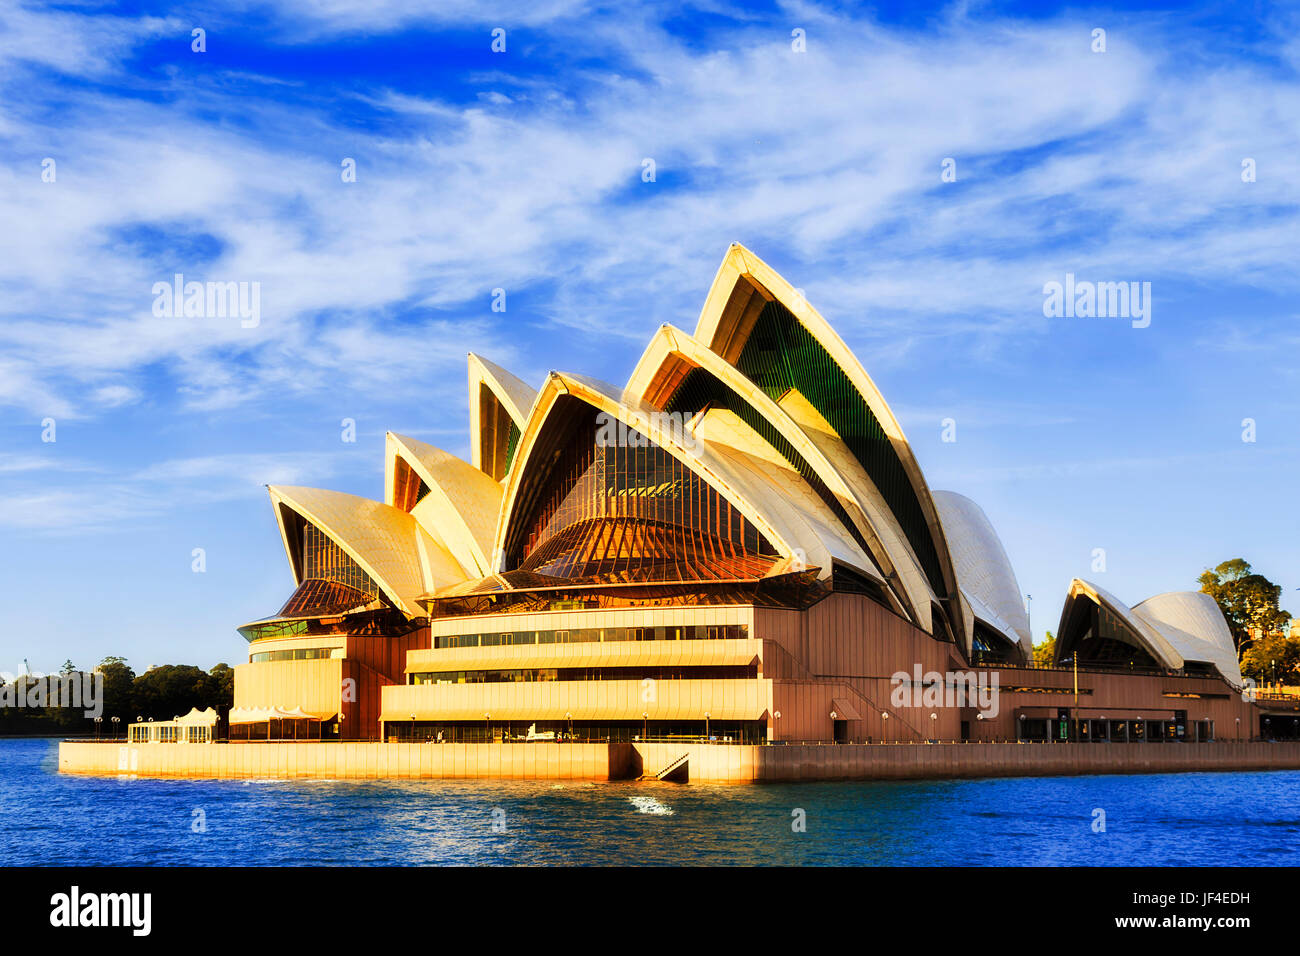 Sydney, Australia - 24 June 2017: Facade of modern contemporary  Opera House theater building on Sydney city harbour - Stock Image